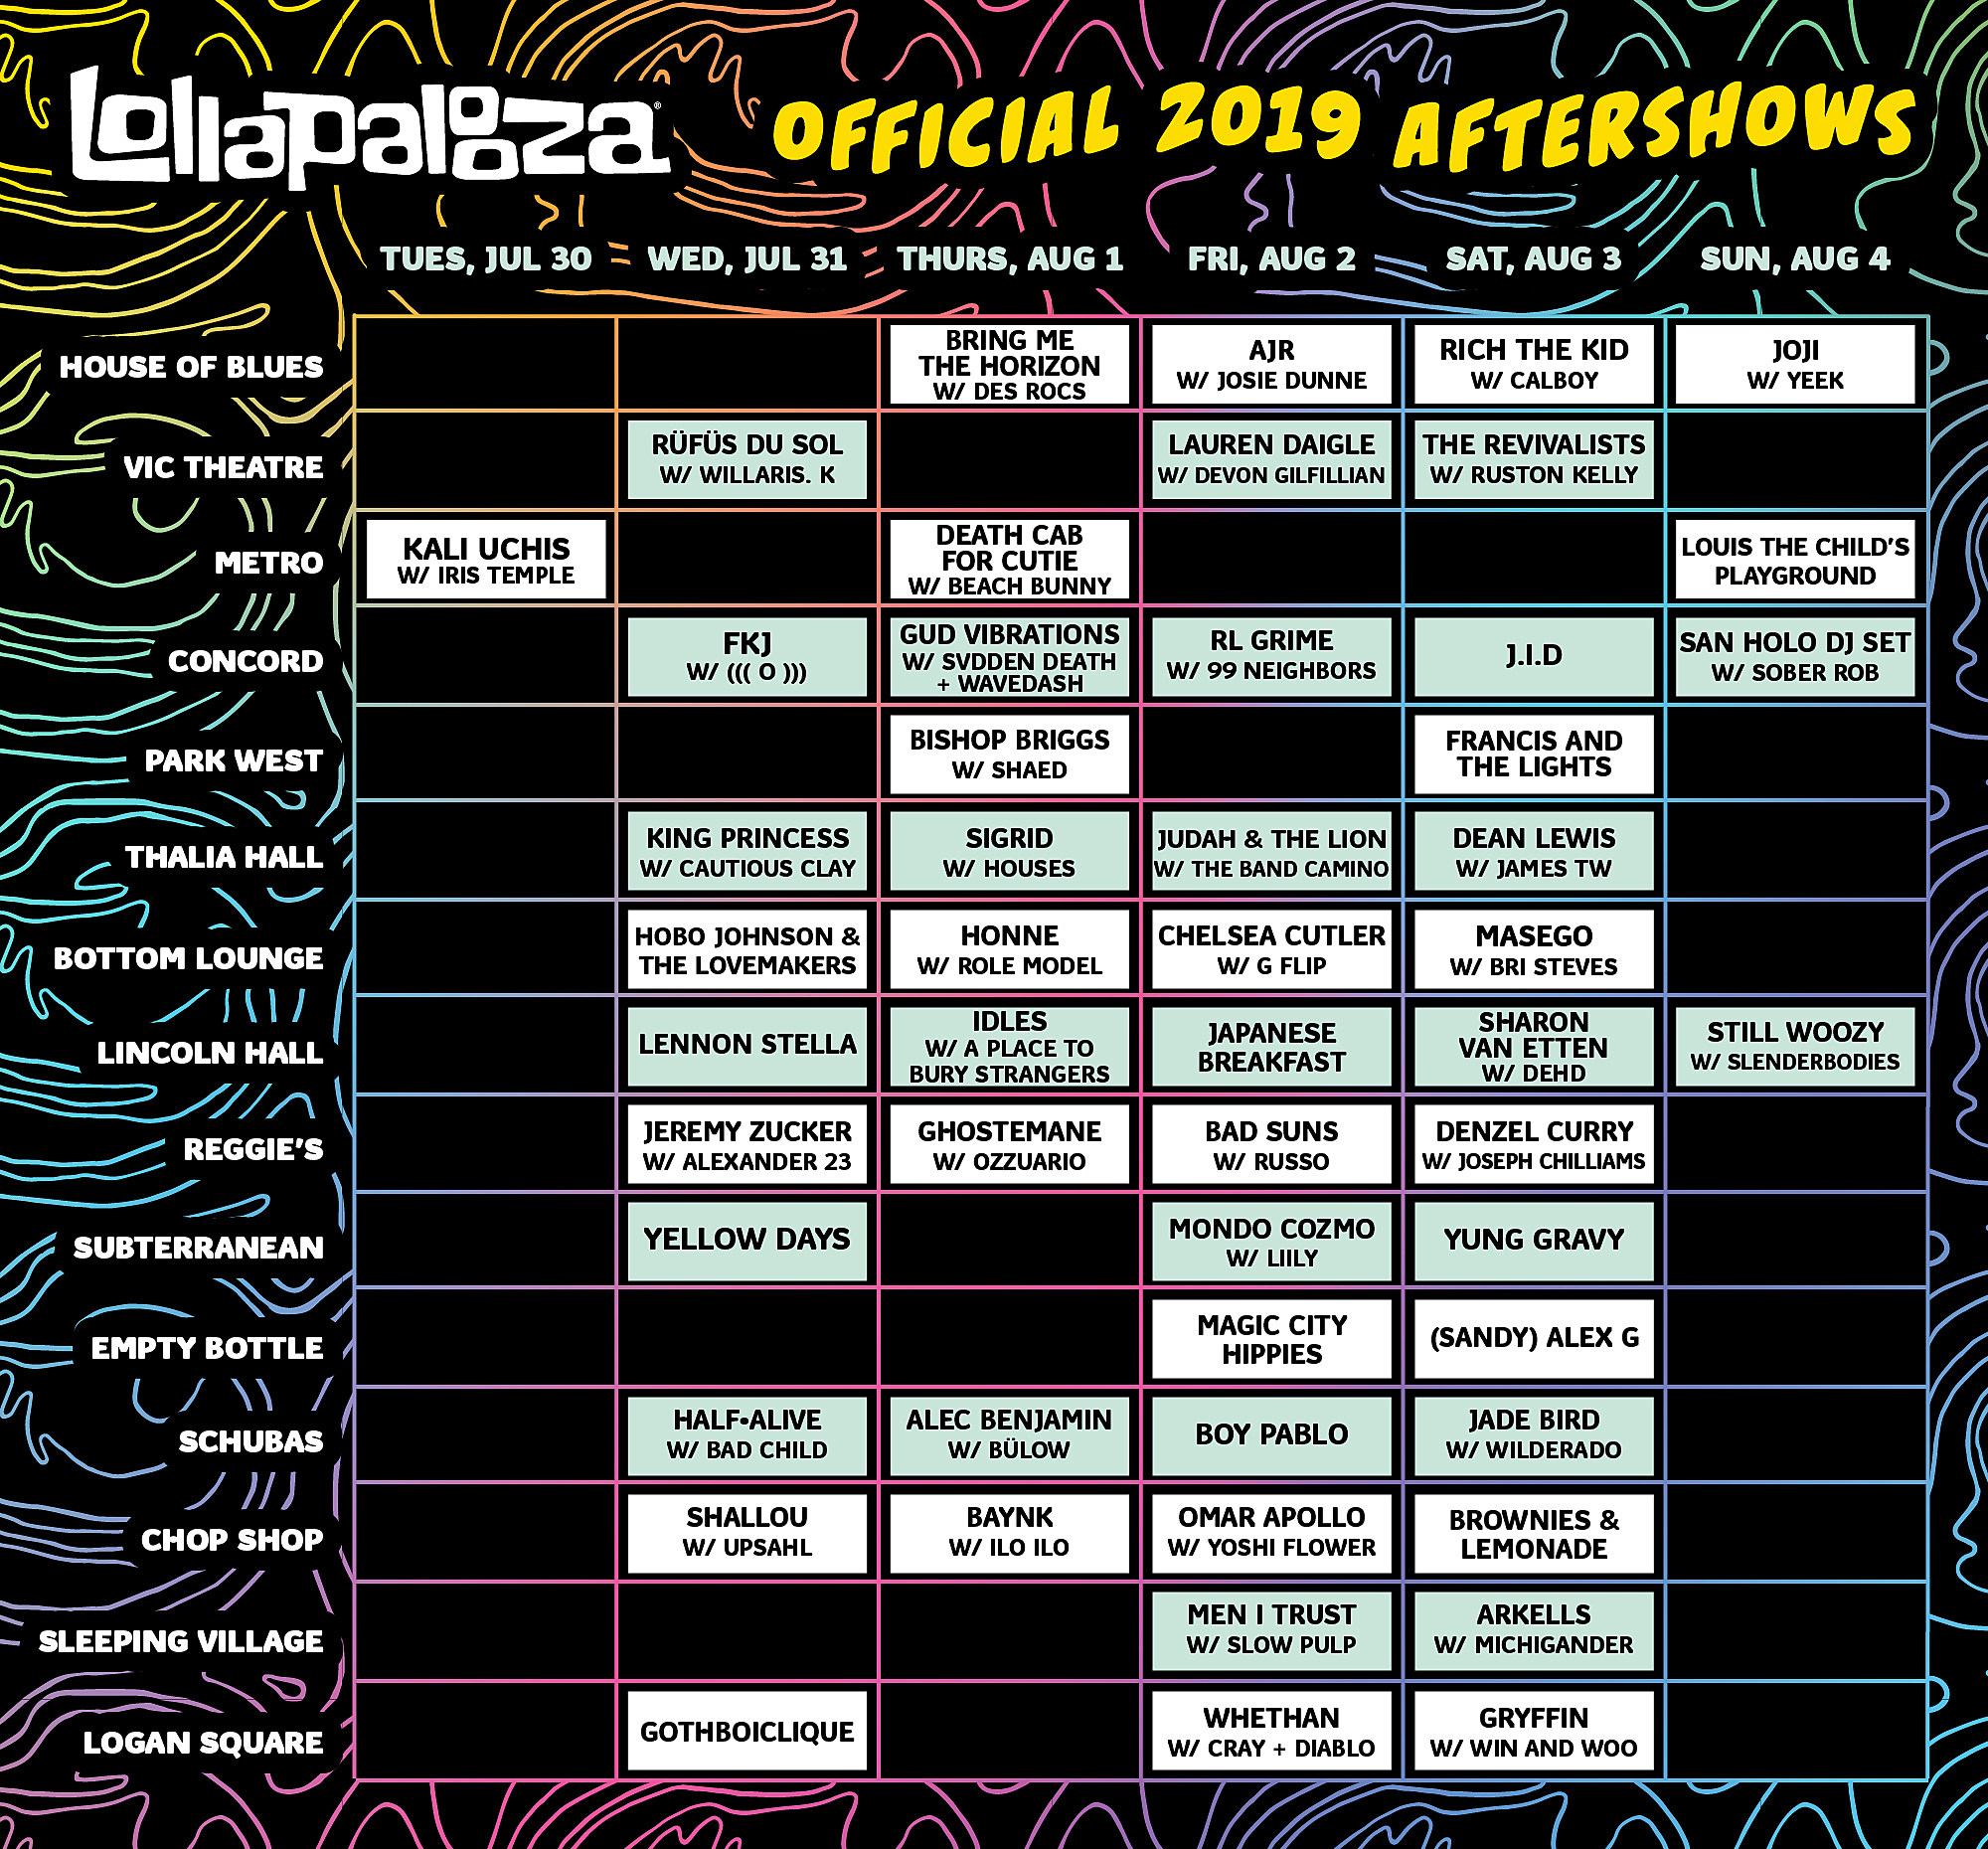 Lollapalooza 2019 Aftershows